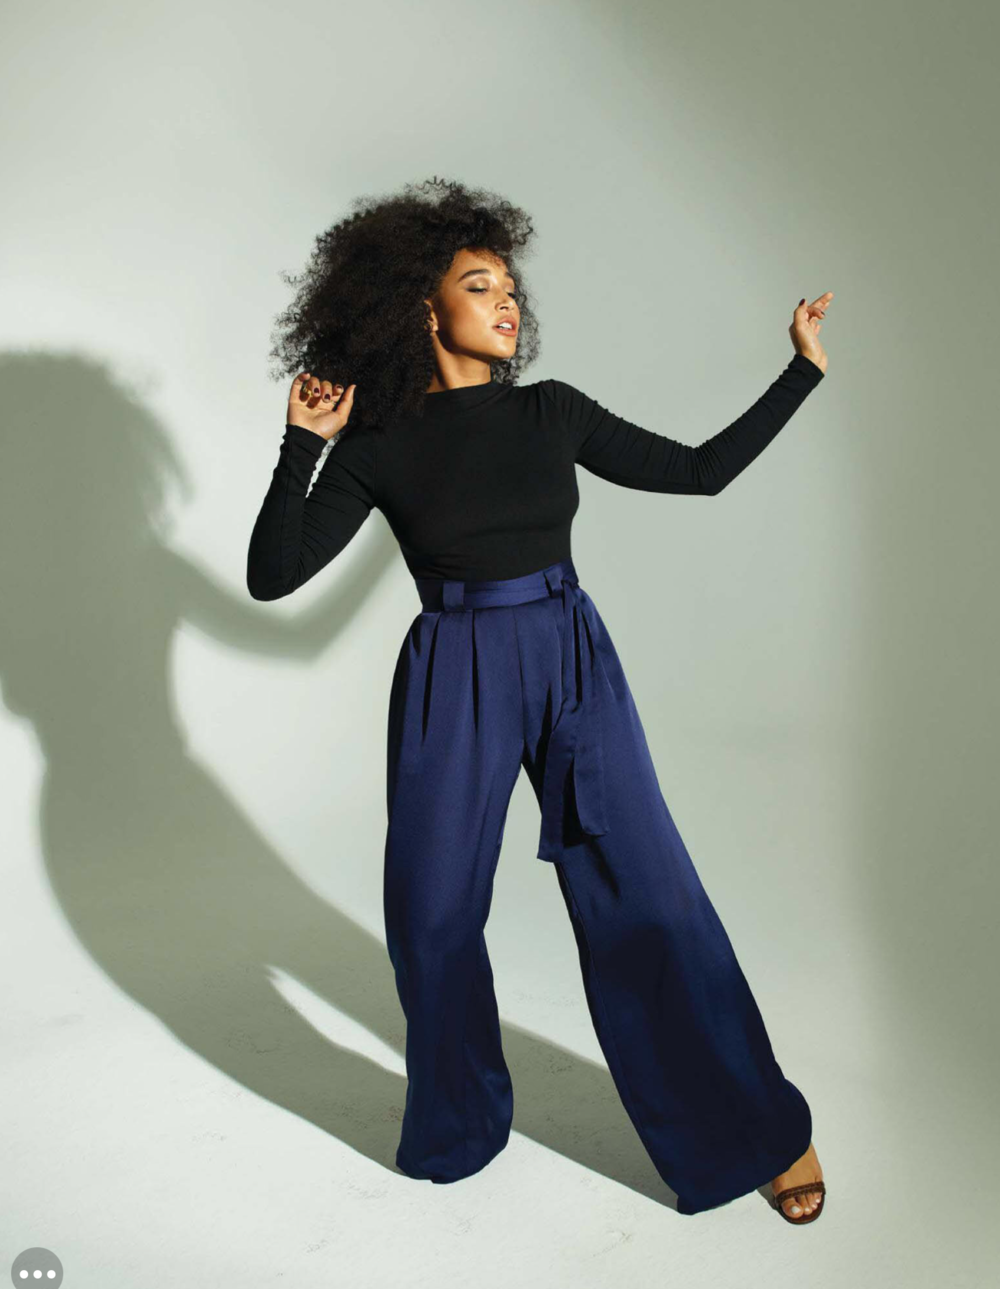 Variety  Magazine - August 28, 2018: Amandla Stenberg in The Capulet, The Halo, The Magician and The Sunny